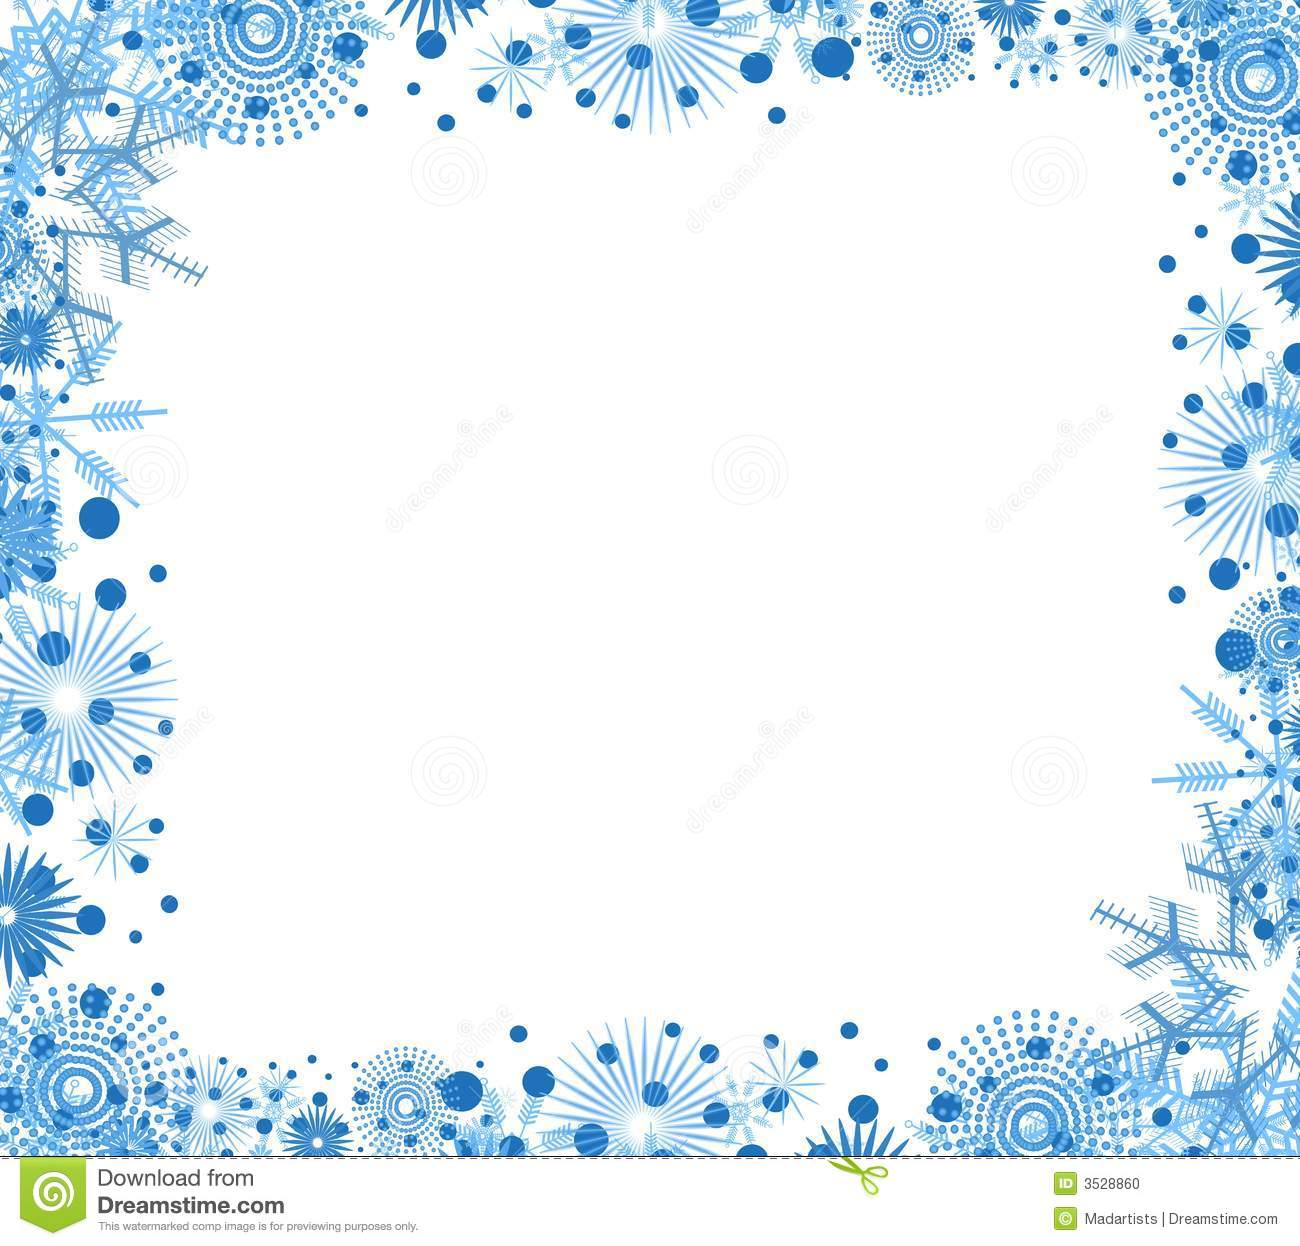 Clipart winter borders svg transparent 23+ Winter Border Clip Art | ClipartLook svg transparent